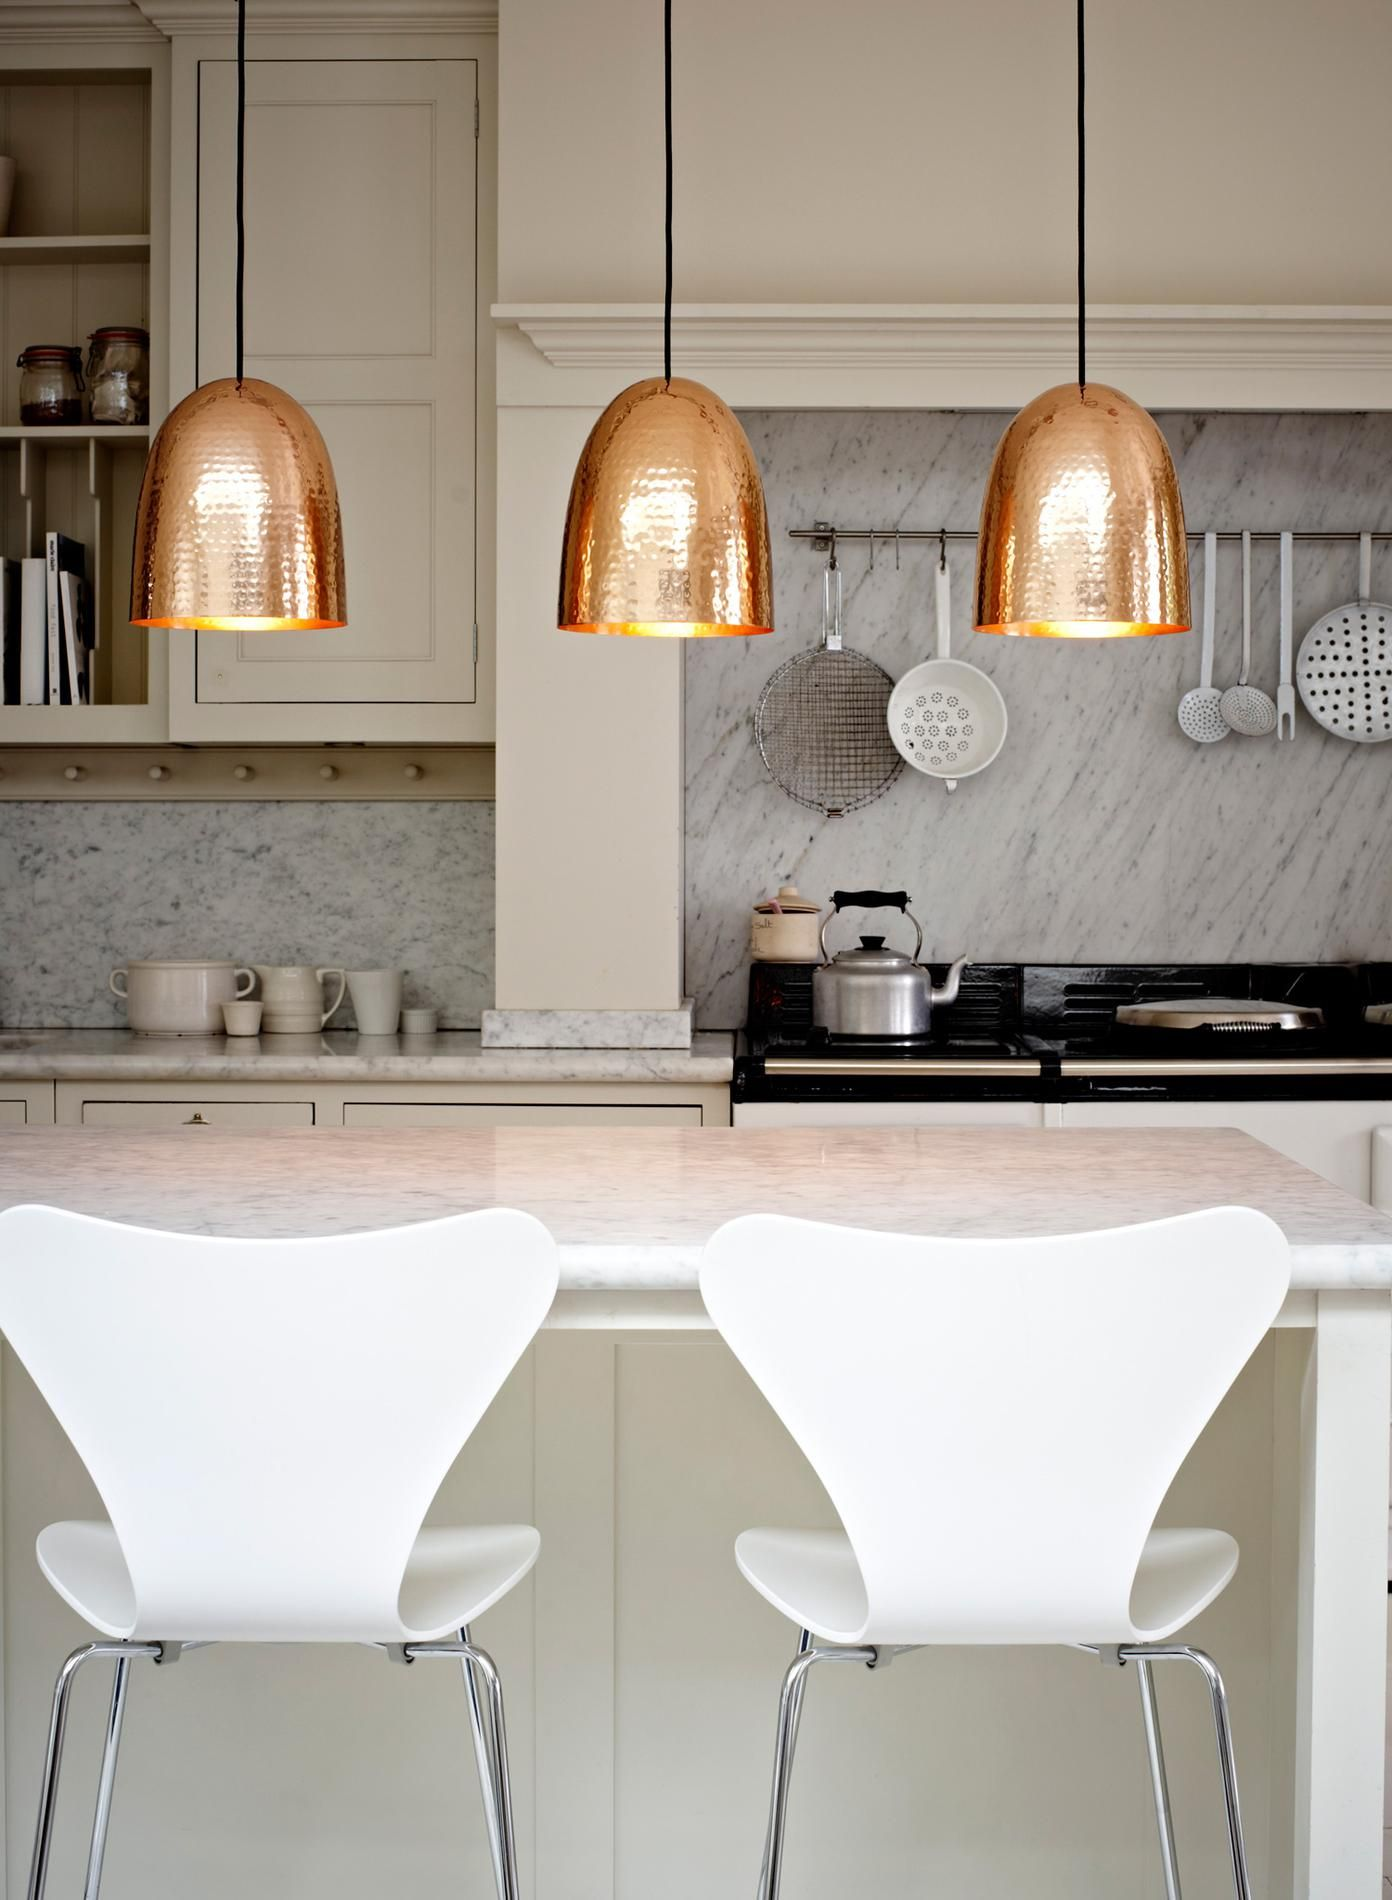 unit house island thurleigh london kitchen modern clapham stock above uk residential lights pendant with photo road